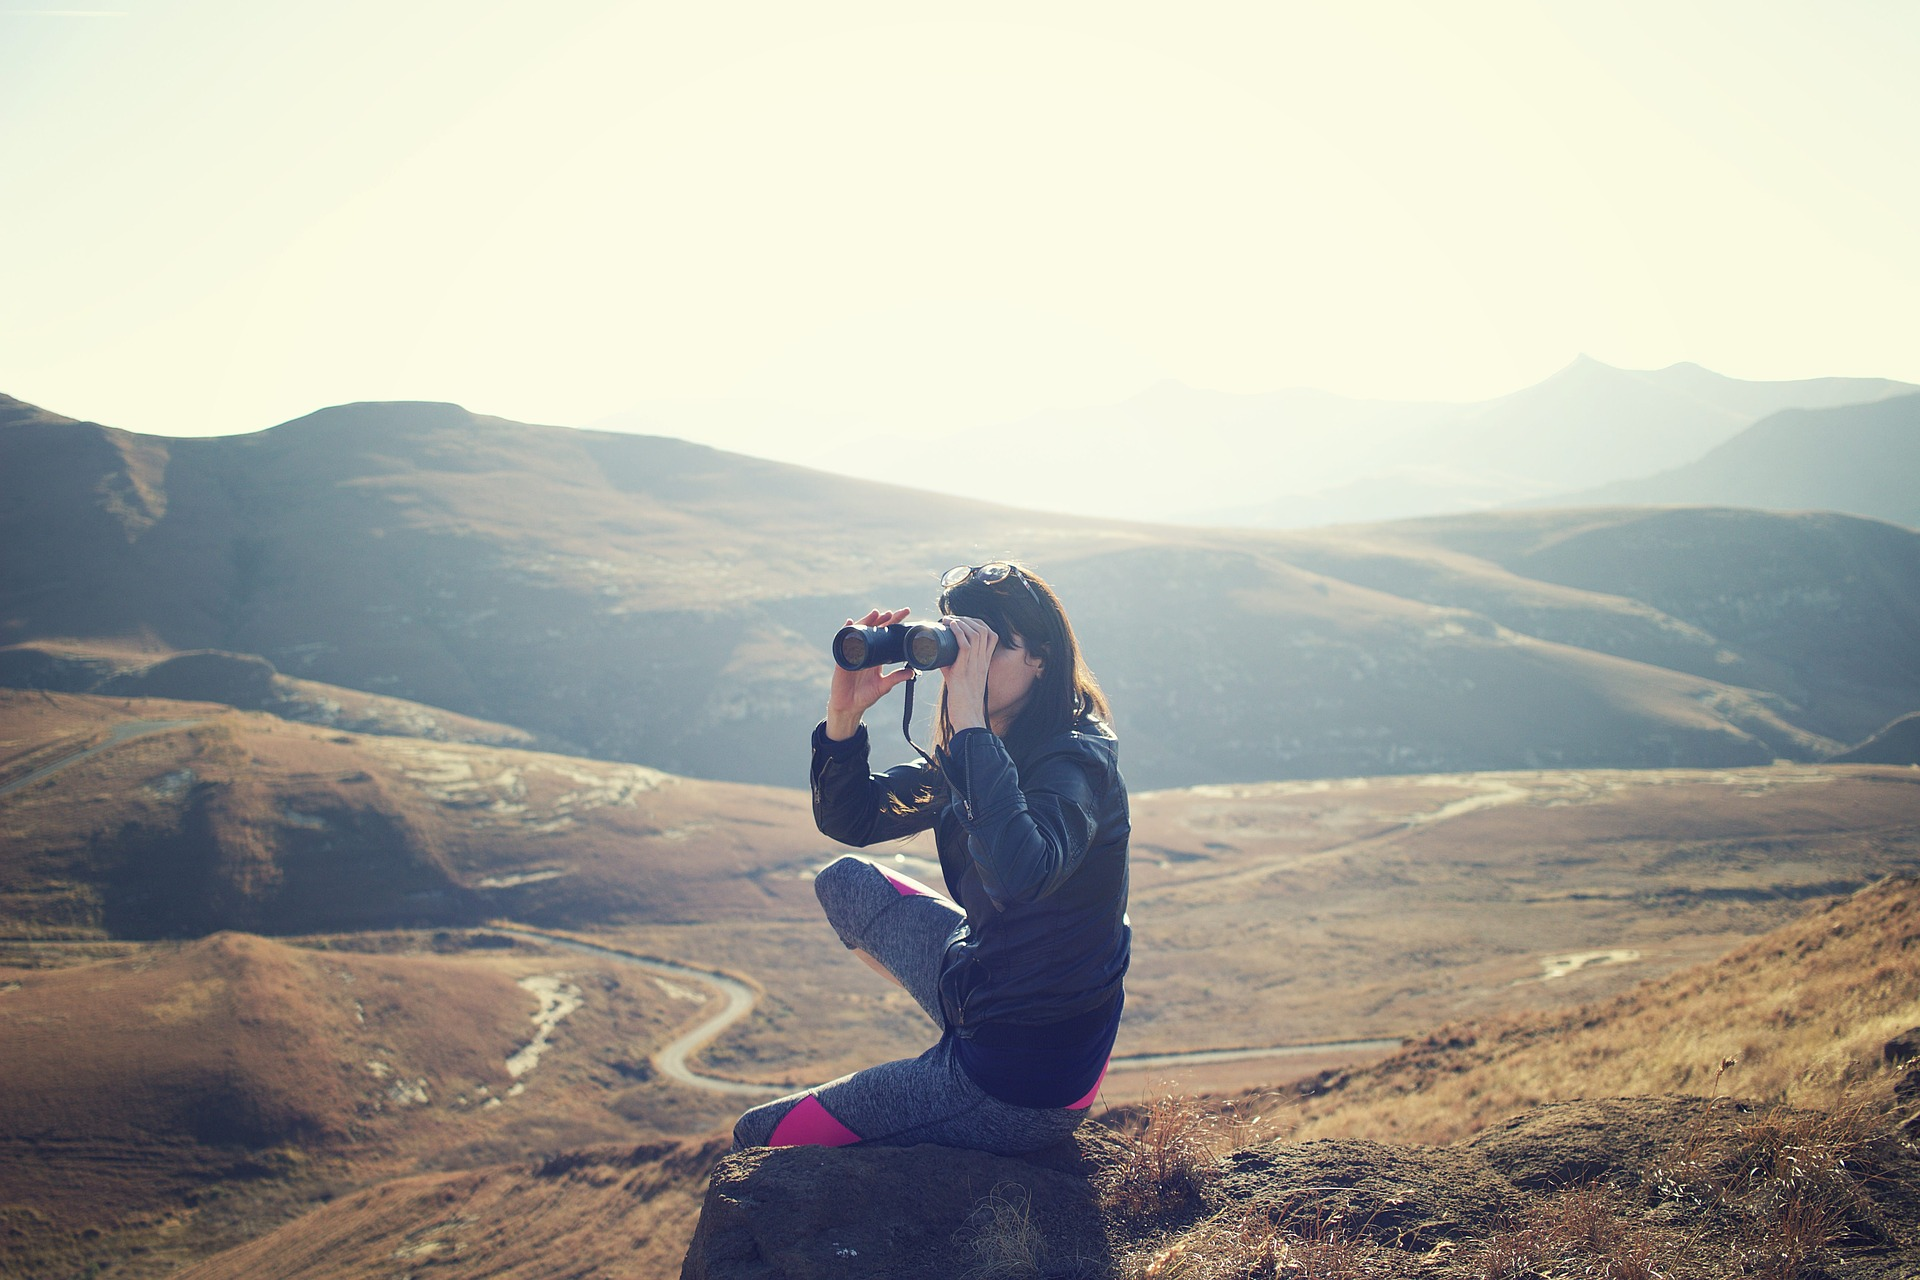 Woman on top of a mountain looking out over the scenery with binoculars